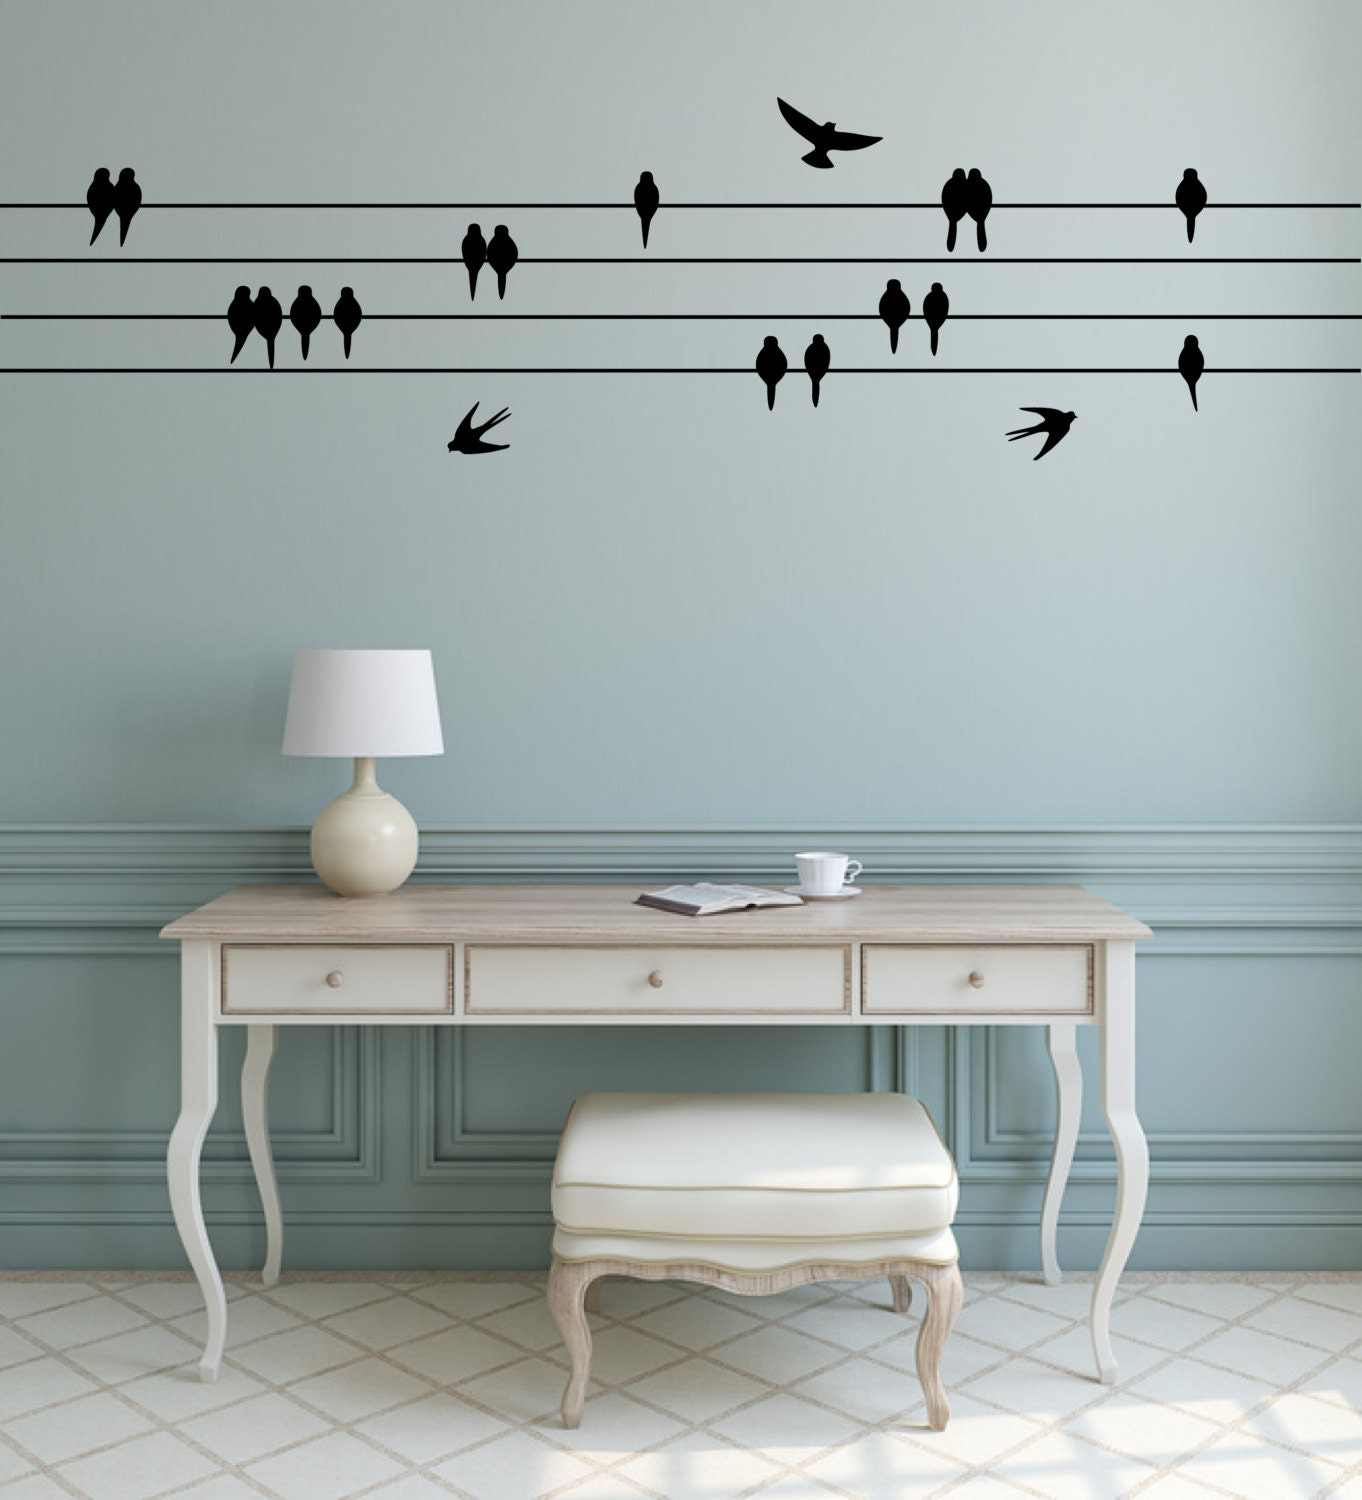 Perched birds wall sticker sitting flying birds bird zoom amipublicfo Images